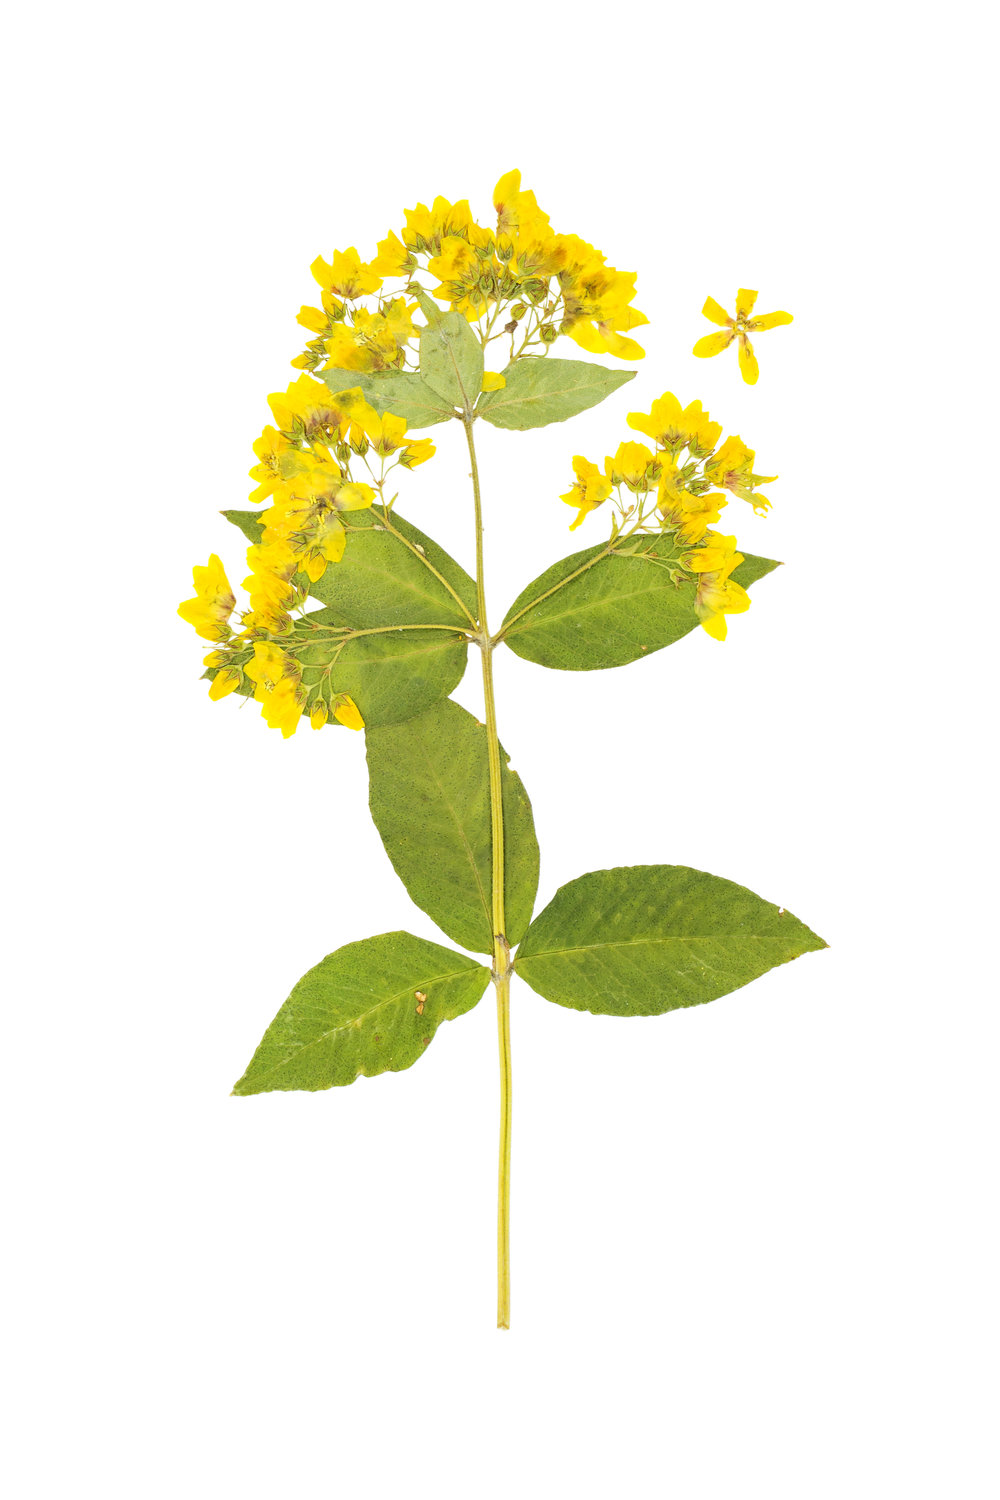 Lysimachia vulgaris / Yellow Loosestrife